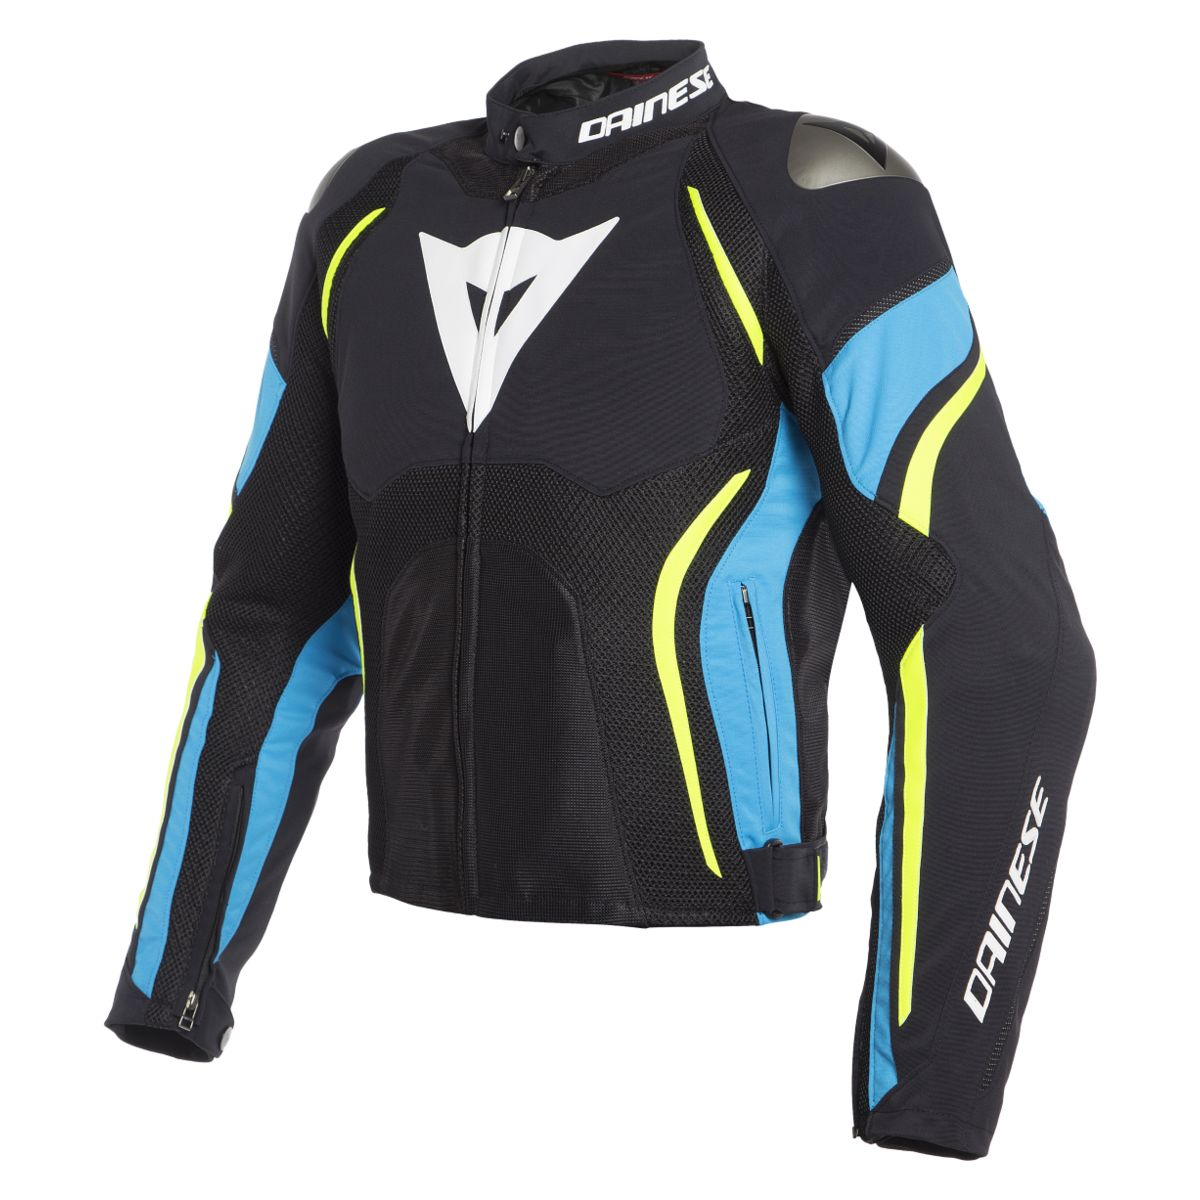 Best Deals On Motorcycle Gear At Revzilla For The Week Of